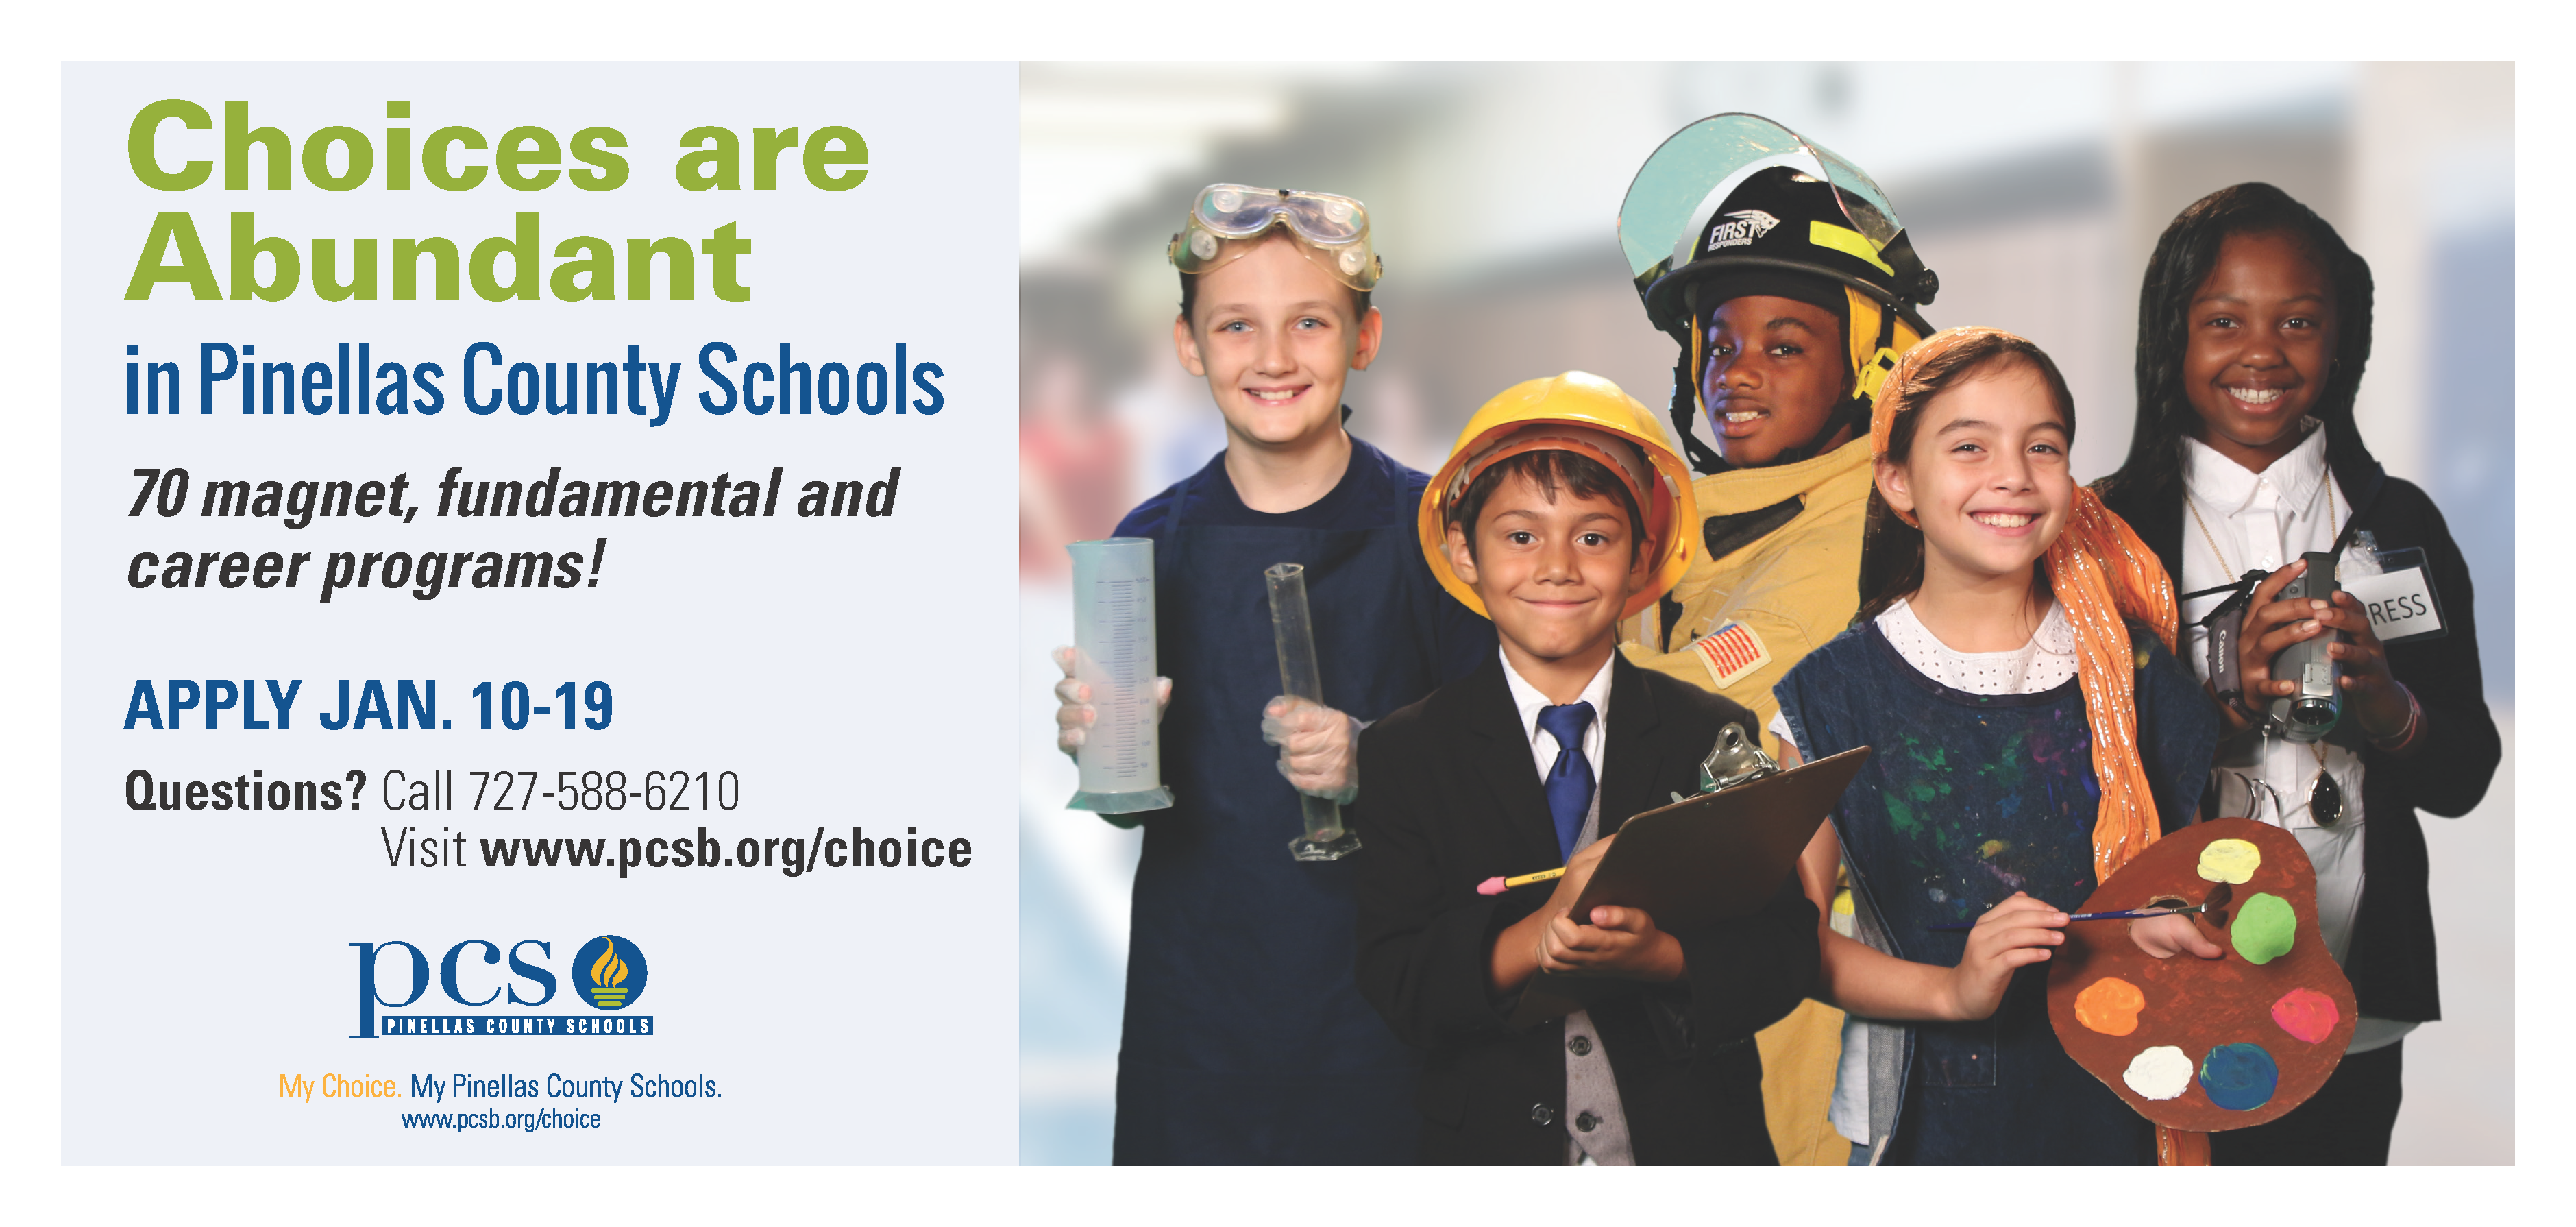 Pinellas County School Choice Program Applications, featured, education